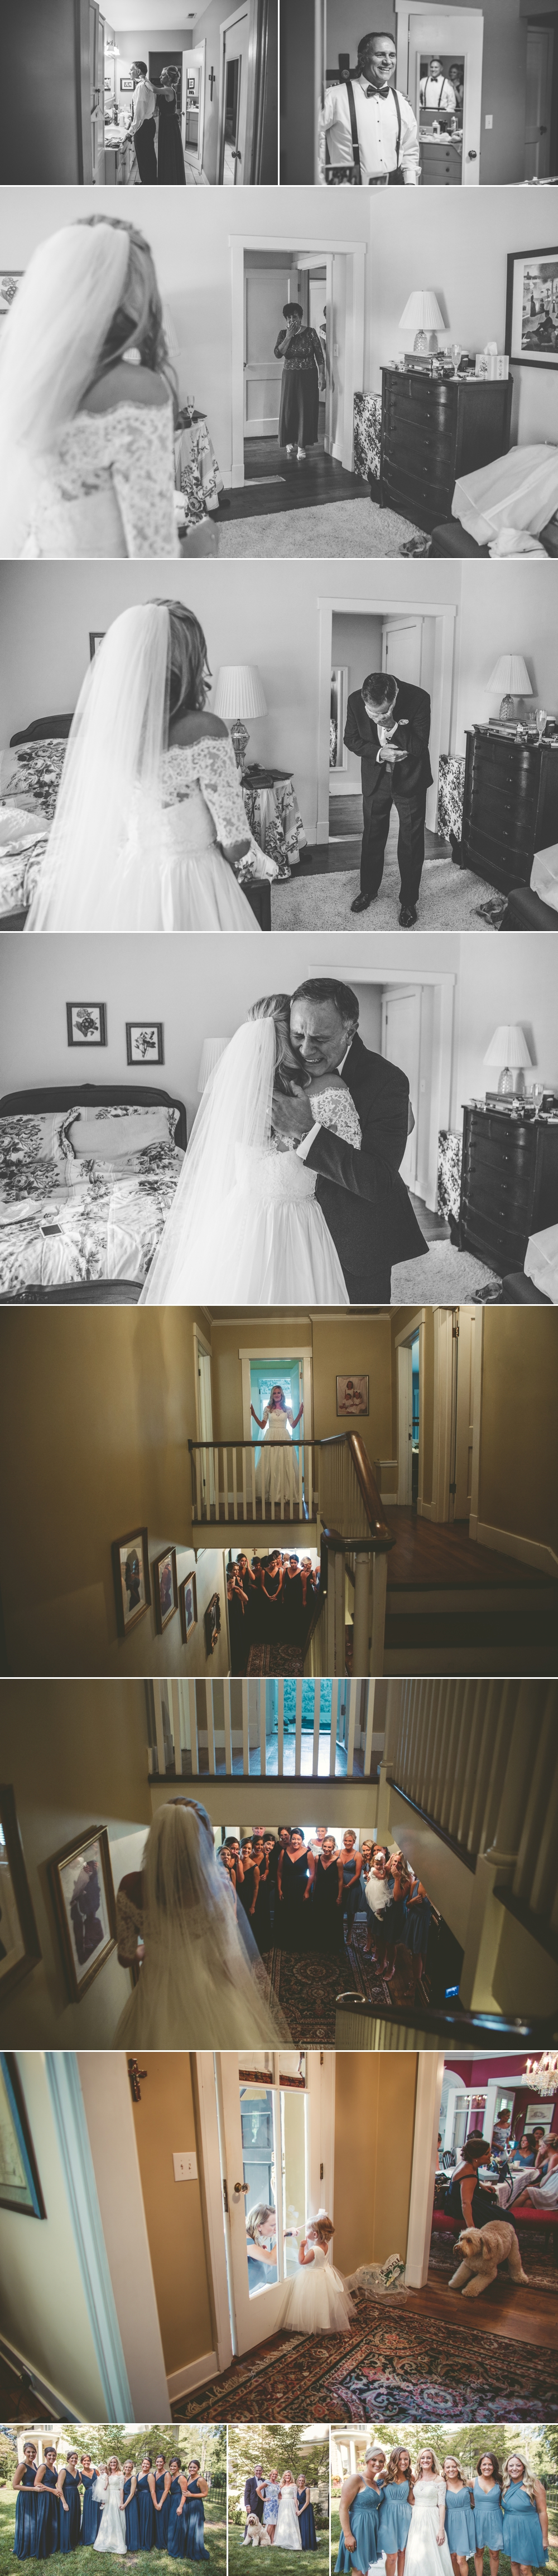 jason_domingues_photography_best_kansas_city_wedding_photographer_kc_weddings_madrid_theater_our_lady_or_perpetual_help_0002.JPG